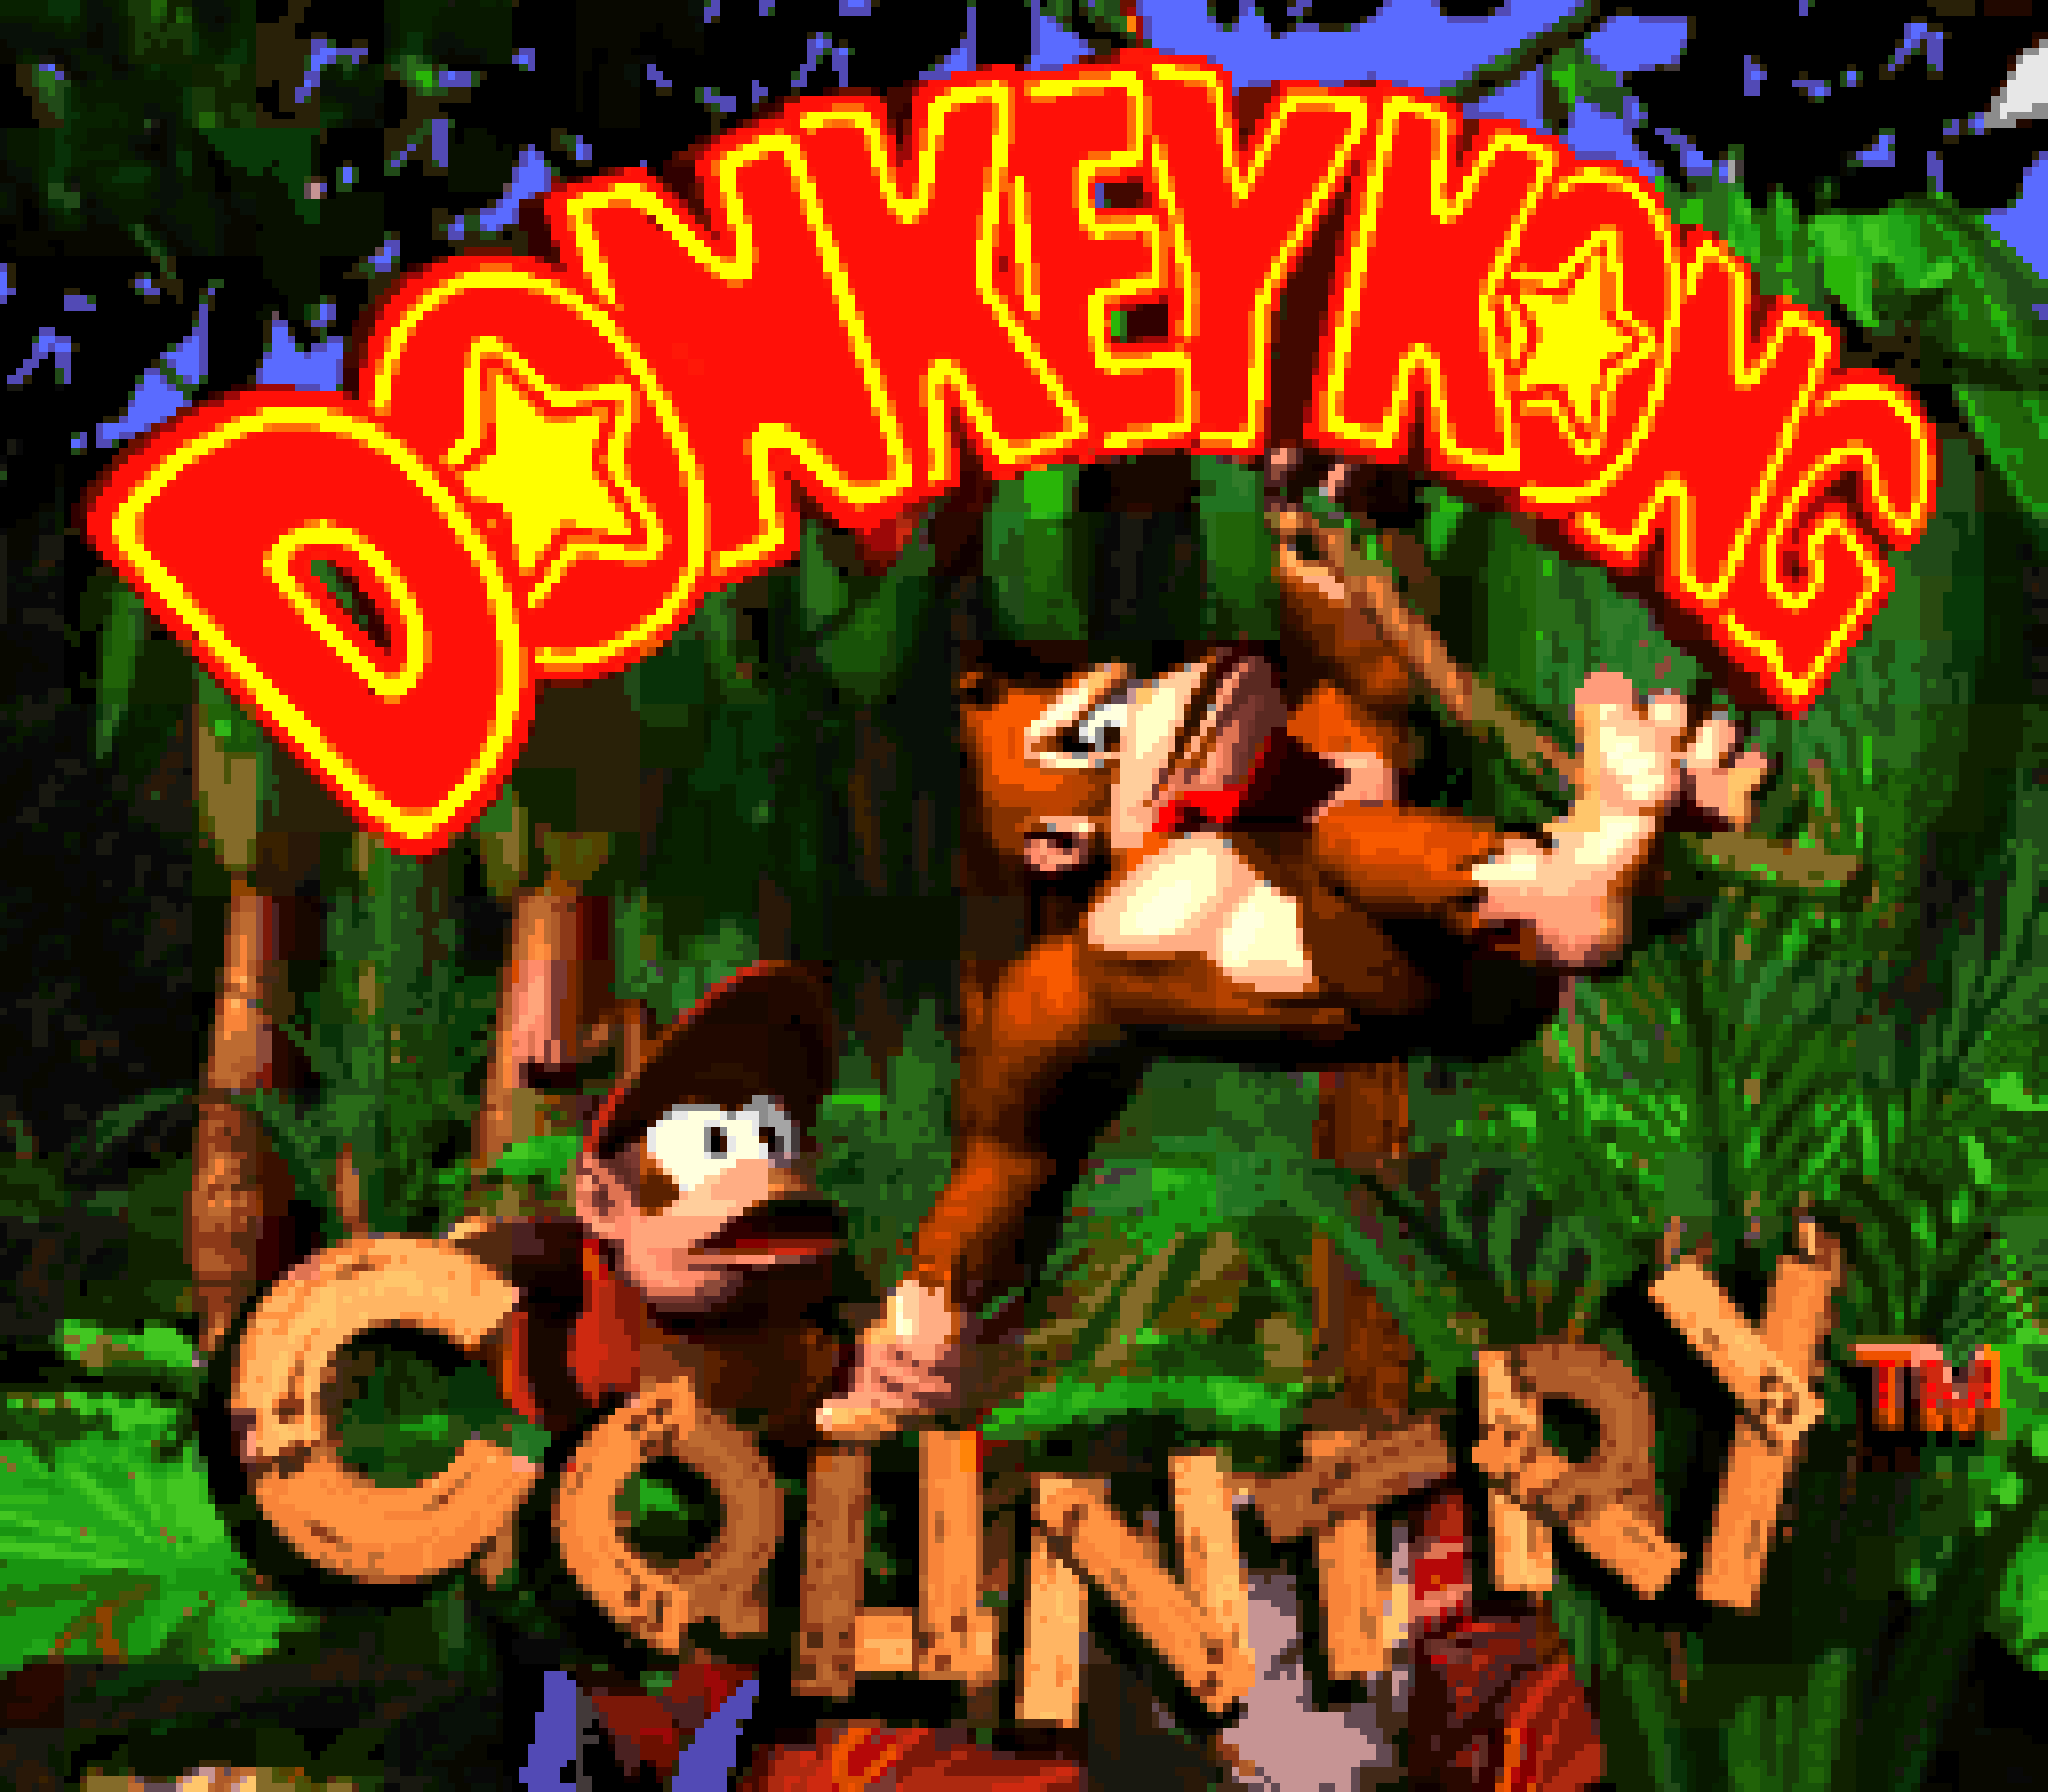 The title screen of Donkey Kong Country.